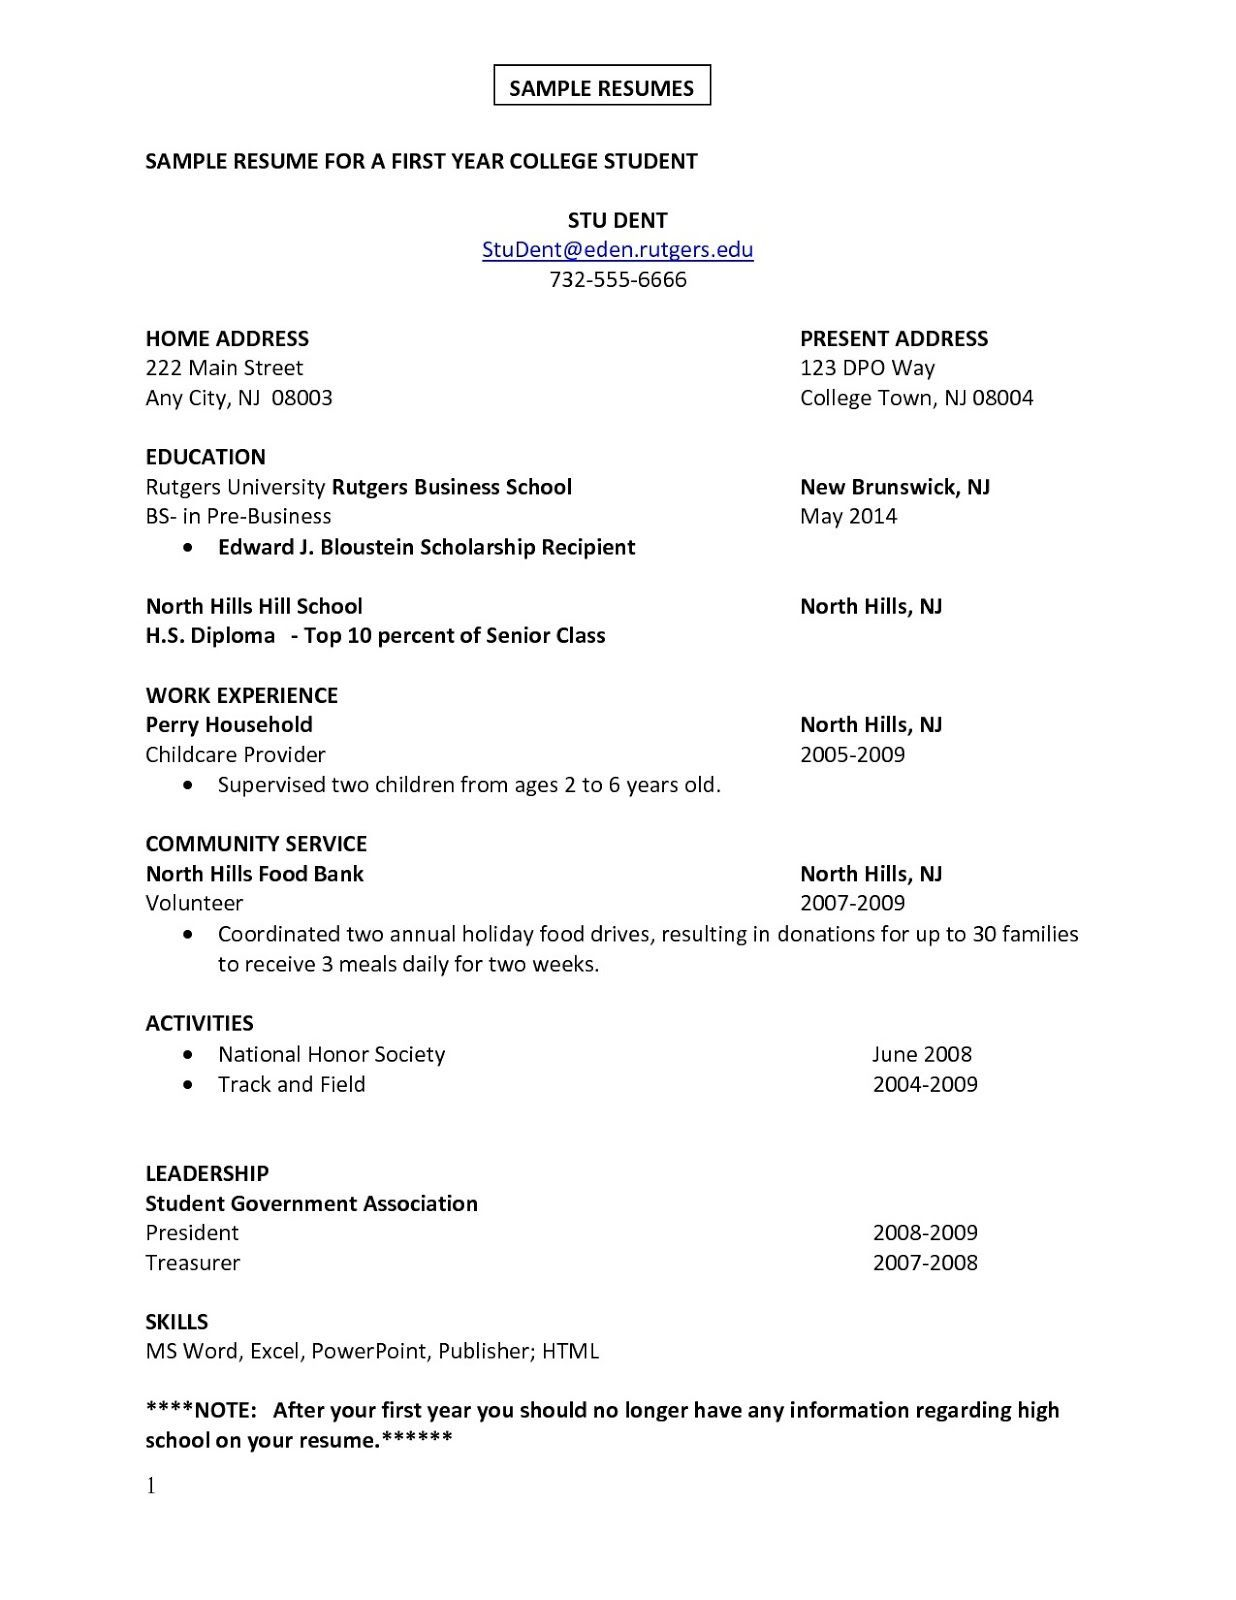 First Job Sample Resume Sample Resumes Resume Examples